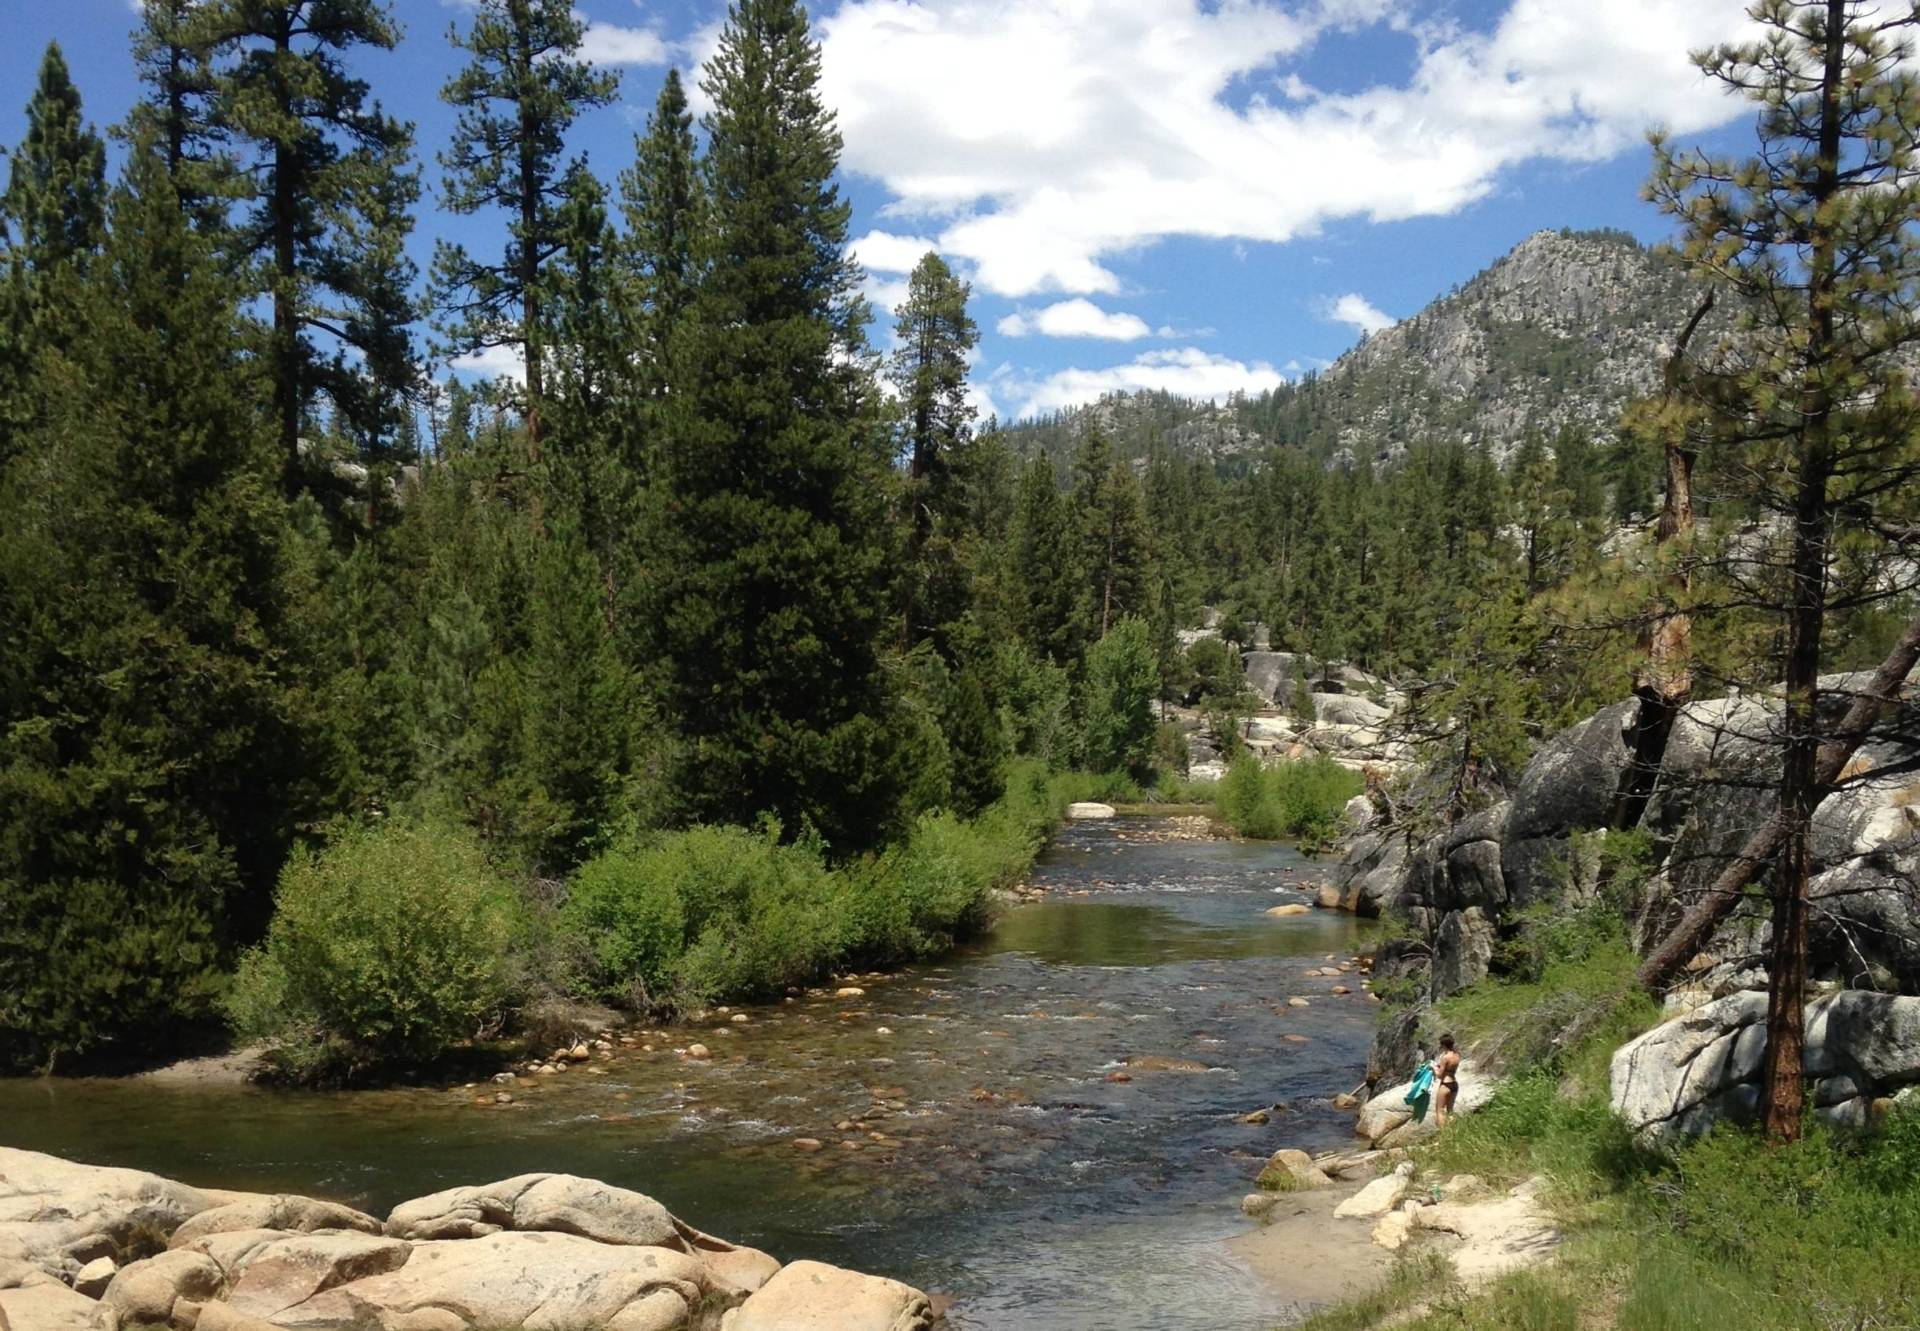 Mono Hot Springs >> Worth The Drive Mono Hot Springs Stunning Alpine Scenery